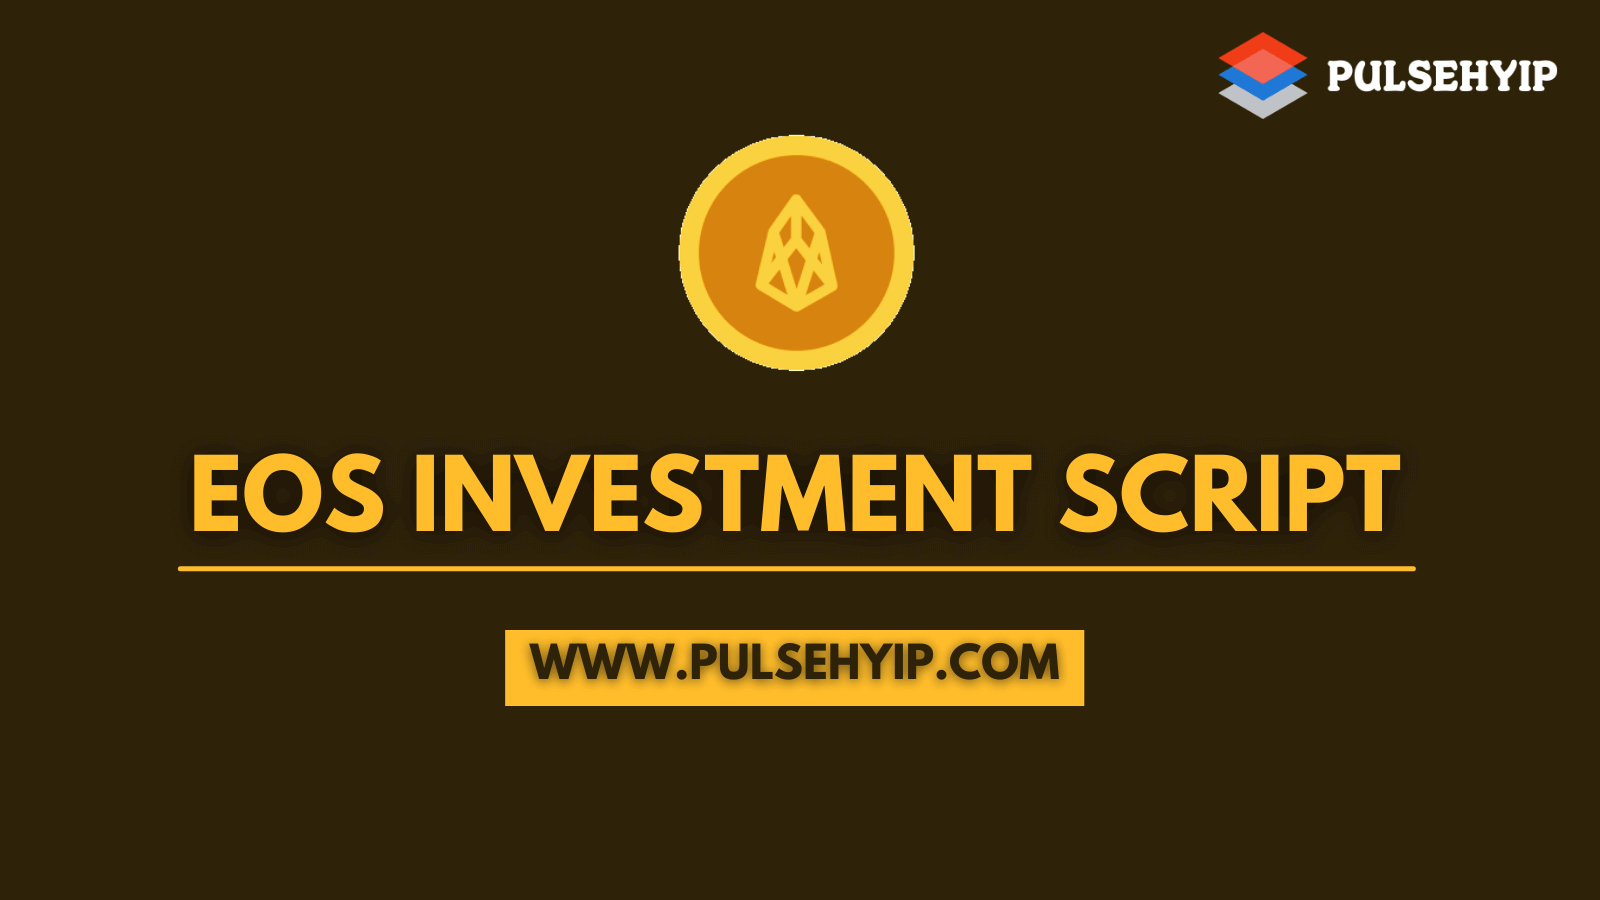 EOS Investment Script to Start Investment Platform on EOS Network